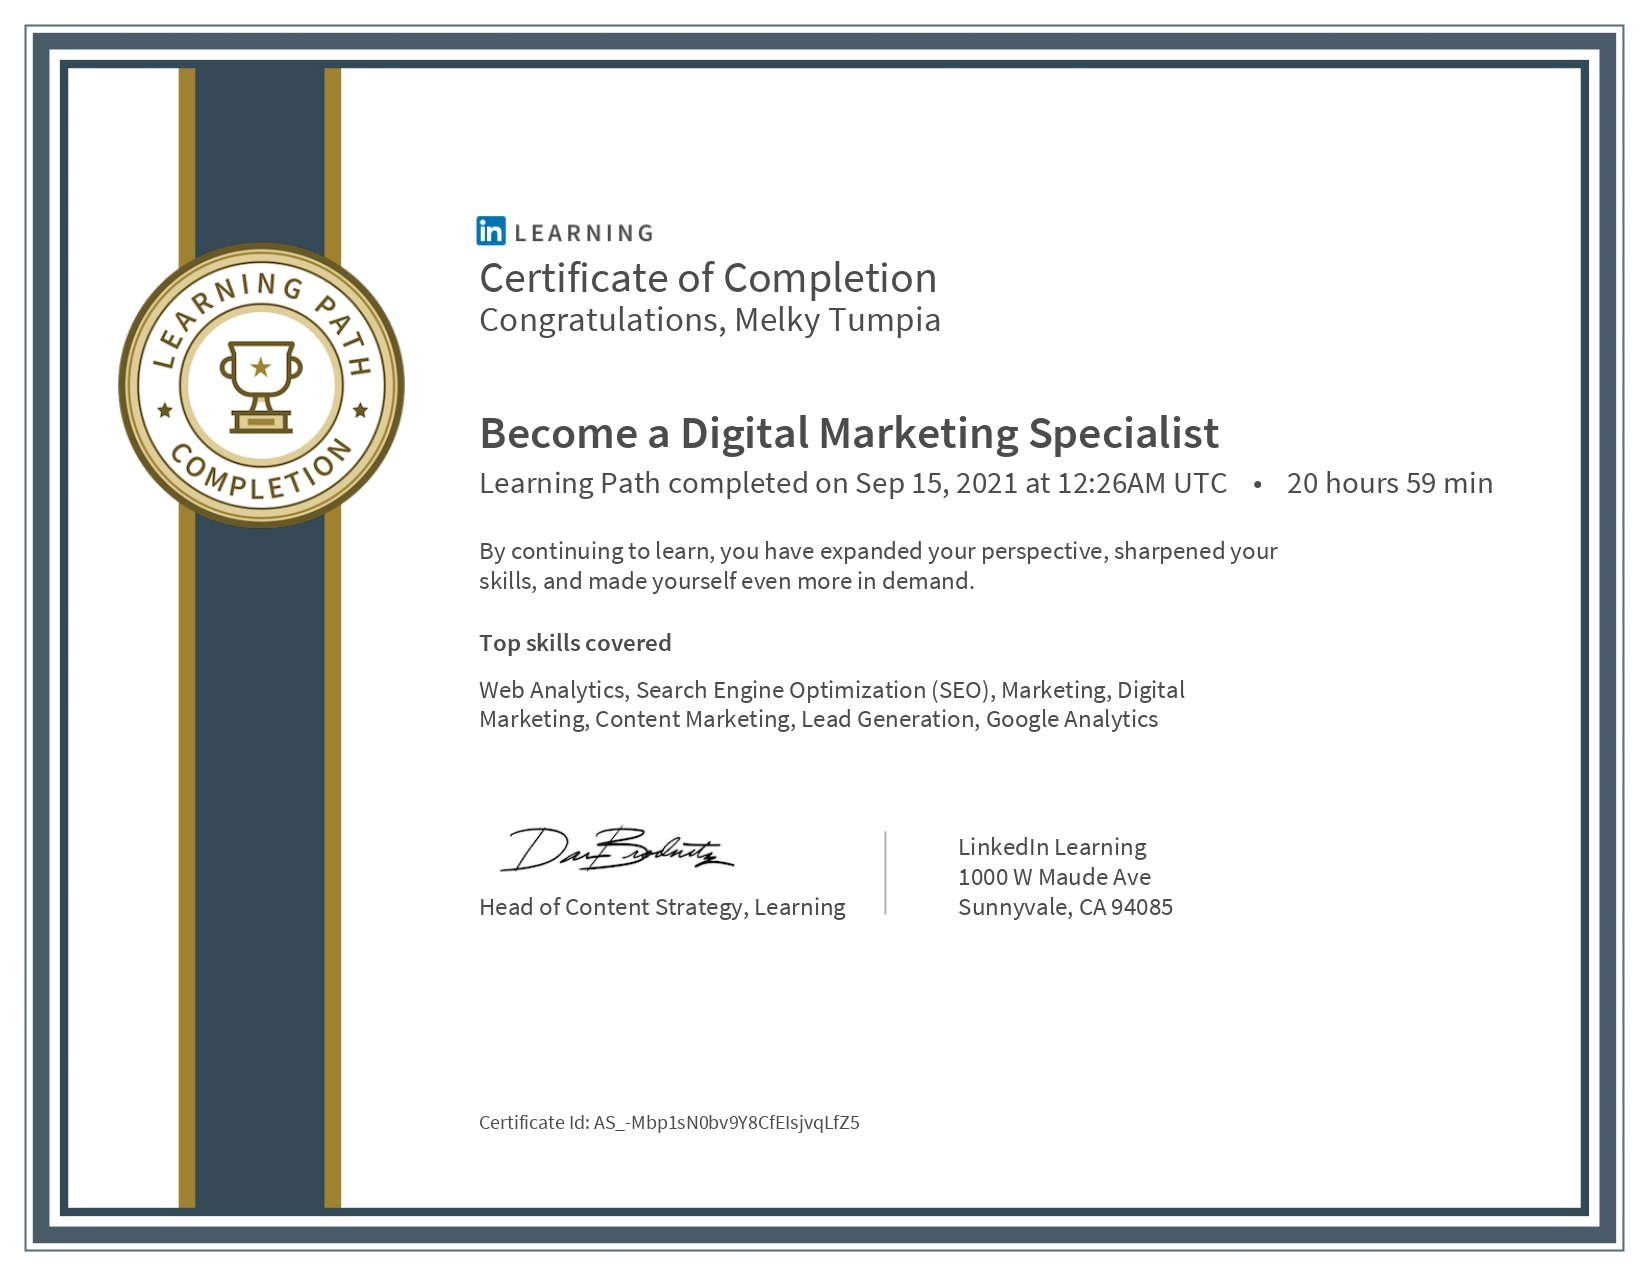 Become a Digital Marketing Specialist - LinkedIn Learning Path (Melky Tumpia)